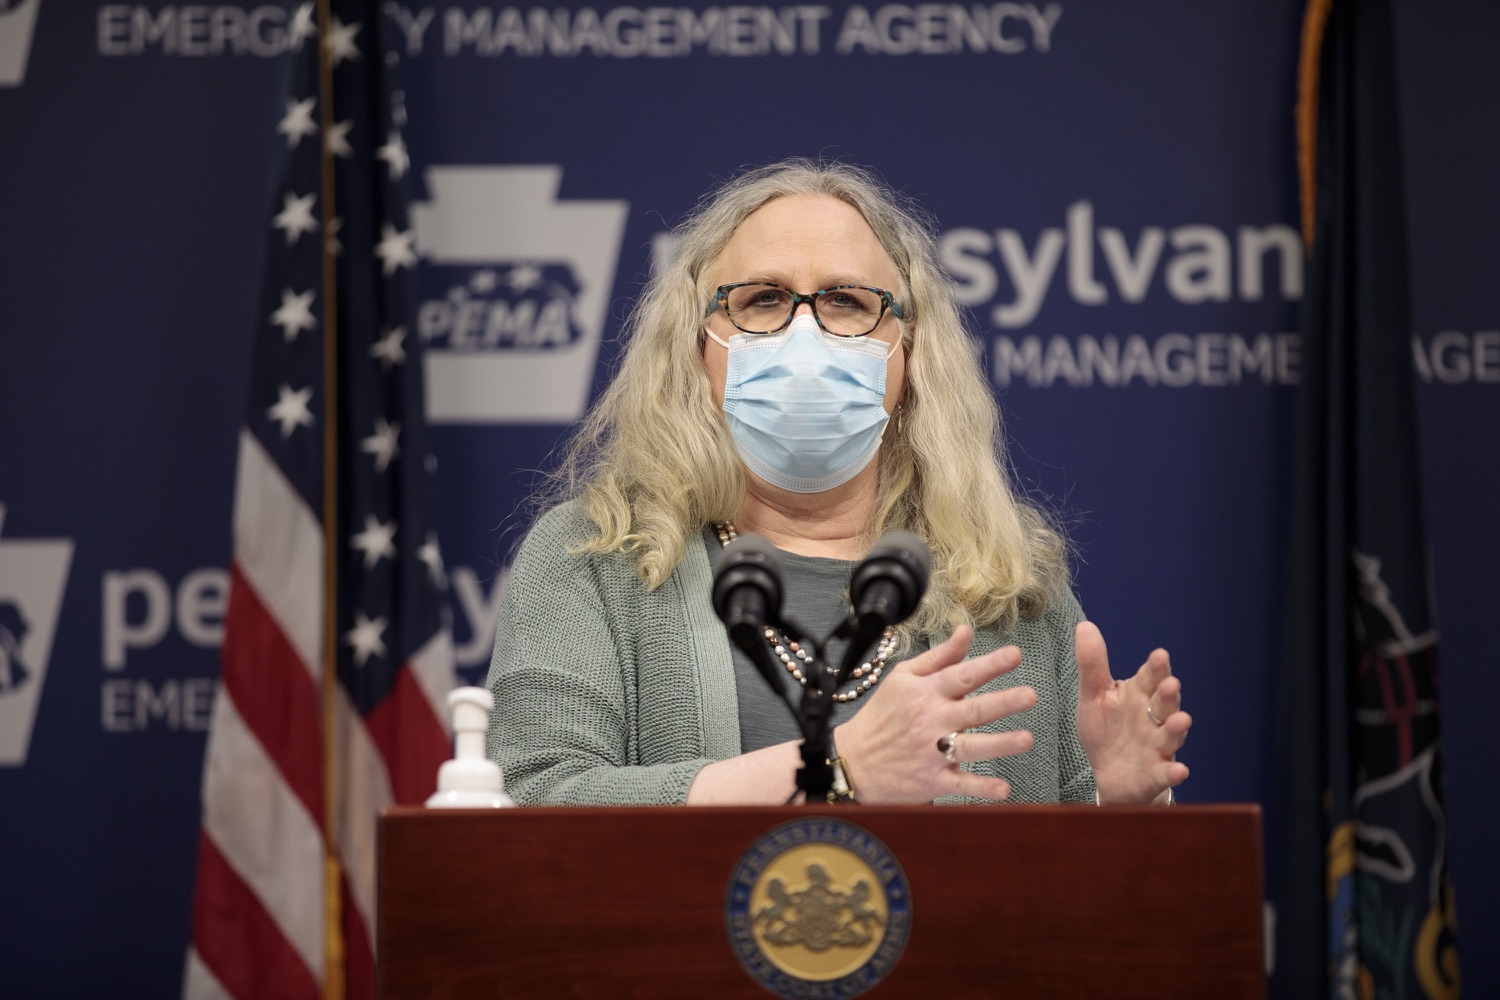 "<a href=""https://filesource.wostreaming.net/commonwealthofpa/photo/18472_gov_vaccine_dz_18.jpg"" target=""_blank"">⇣ Download Photo<br></a>Secretary of Health Dr. Rachel Levine speaks at the press conference.  The commonwealths COVID-19 vaccination distribution plan was designed to be fluid and flexible to meet guidance and recommendations from the federal government. Today, Governor Tom Wolf and Secretary of Health Dr. Rachel Levine announced the fourth version of the plan, detailing the updates and how the state is working to ensure safe, swift implementation. Harrisburg, PA  January 8, 2021"